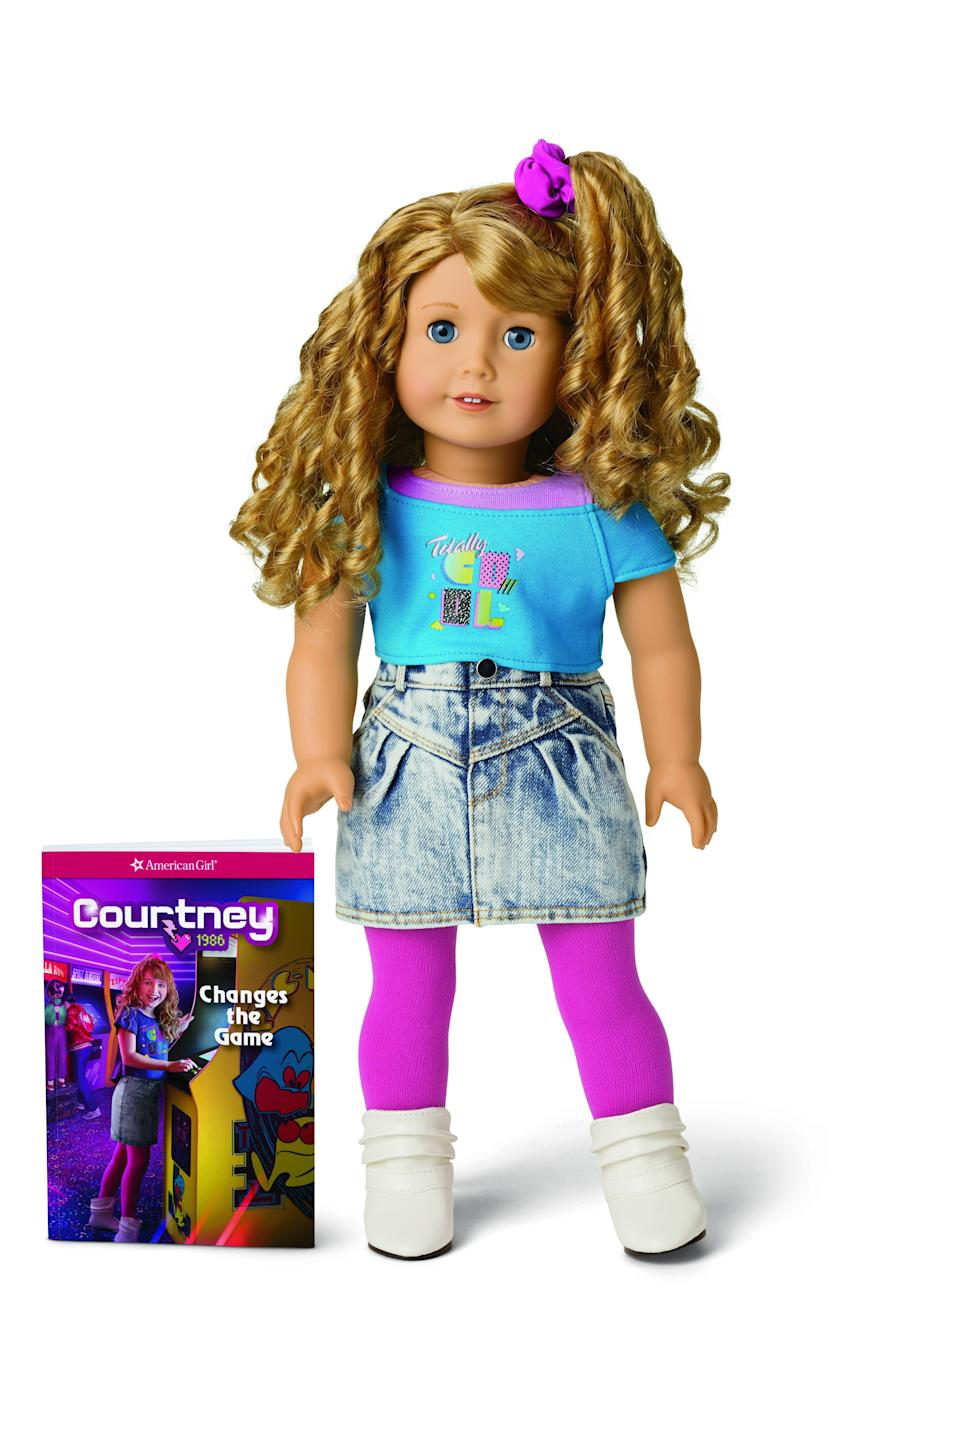 Courtney dreams of creating new video games.  (Photo: American Girl)